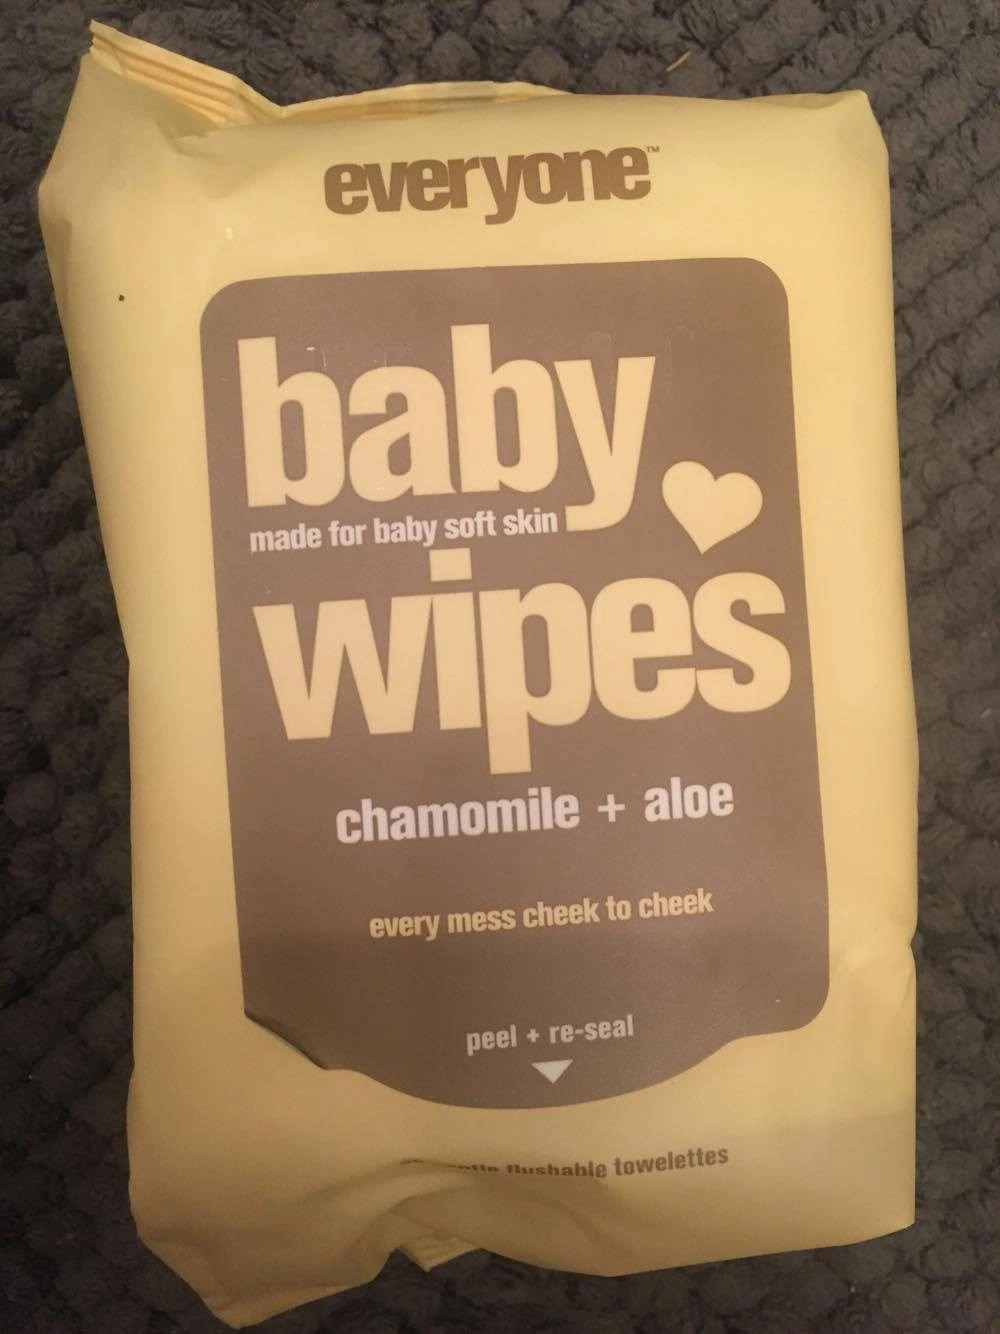 Everyone Baby Wipes